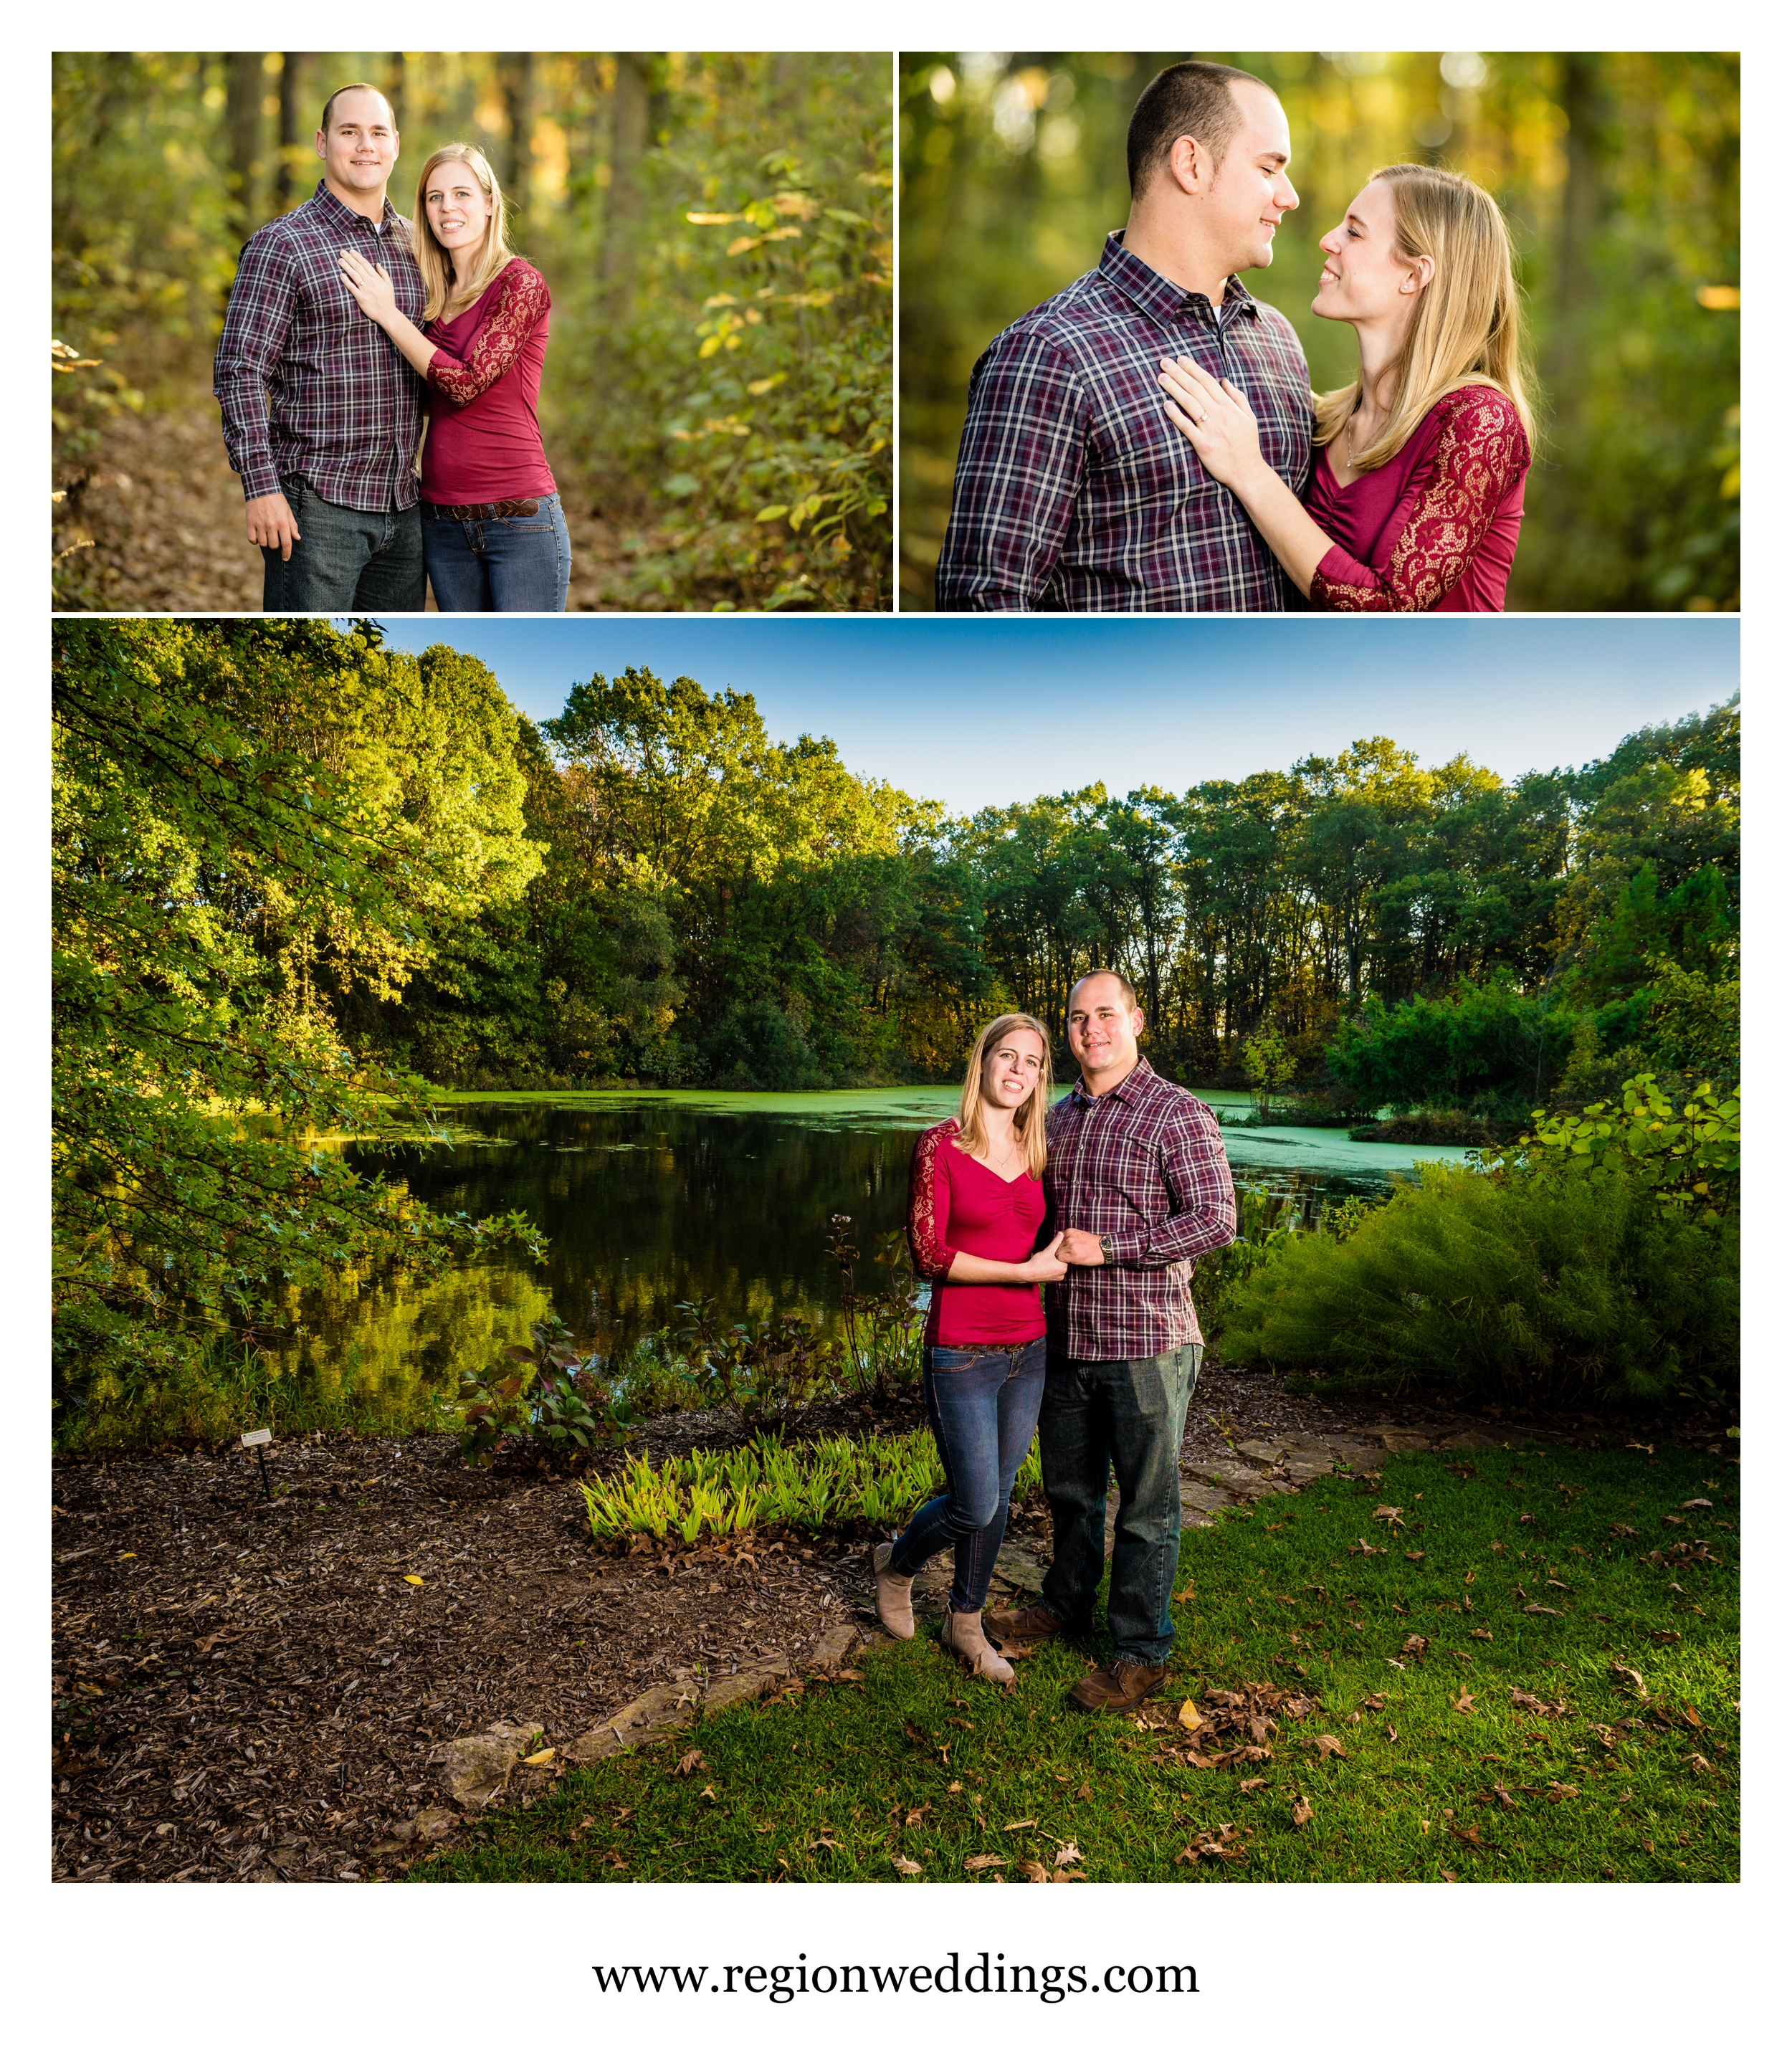 Fall engagement photos at the scenic Taltree Arboretum in Valparaiso, Indiana.